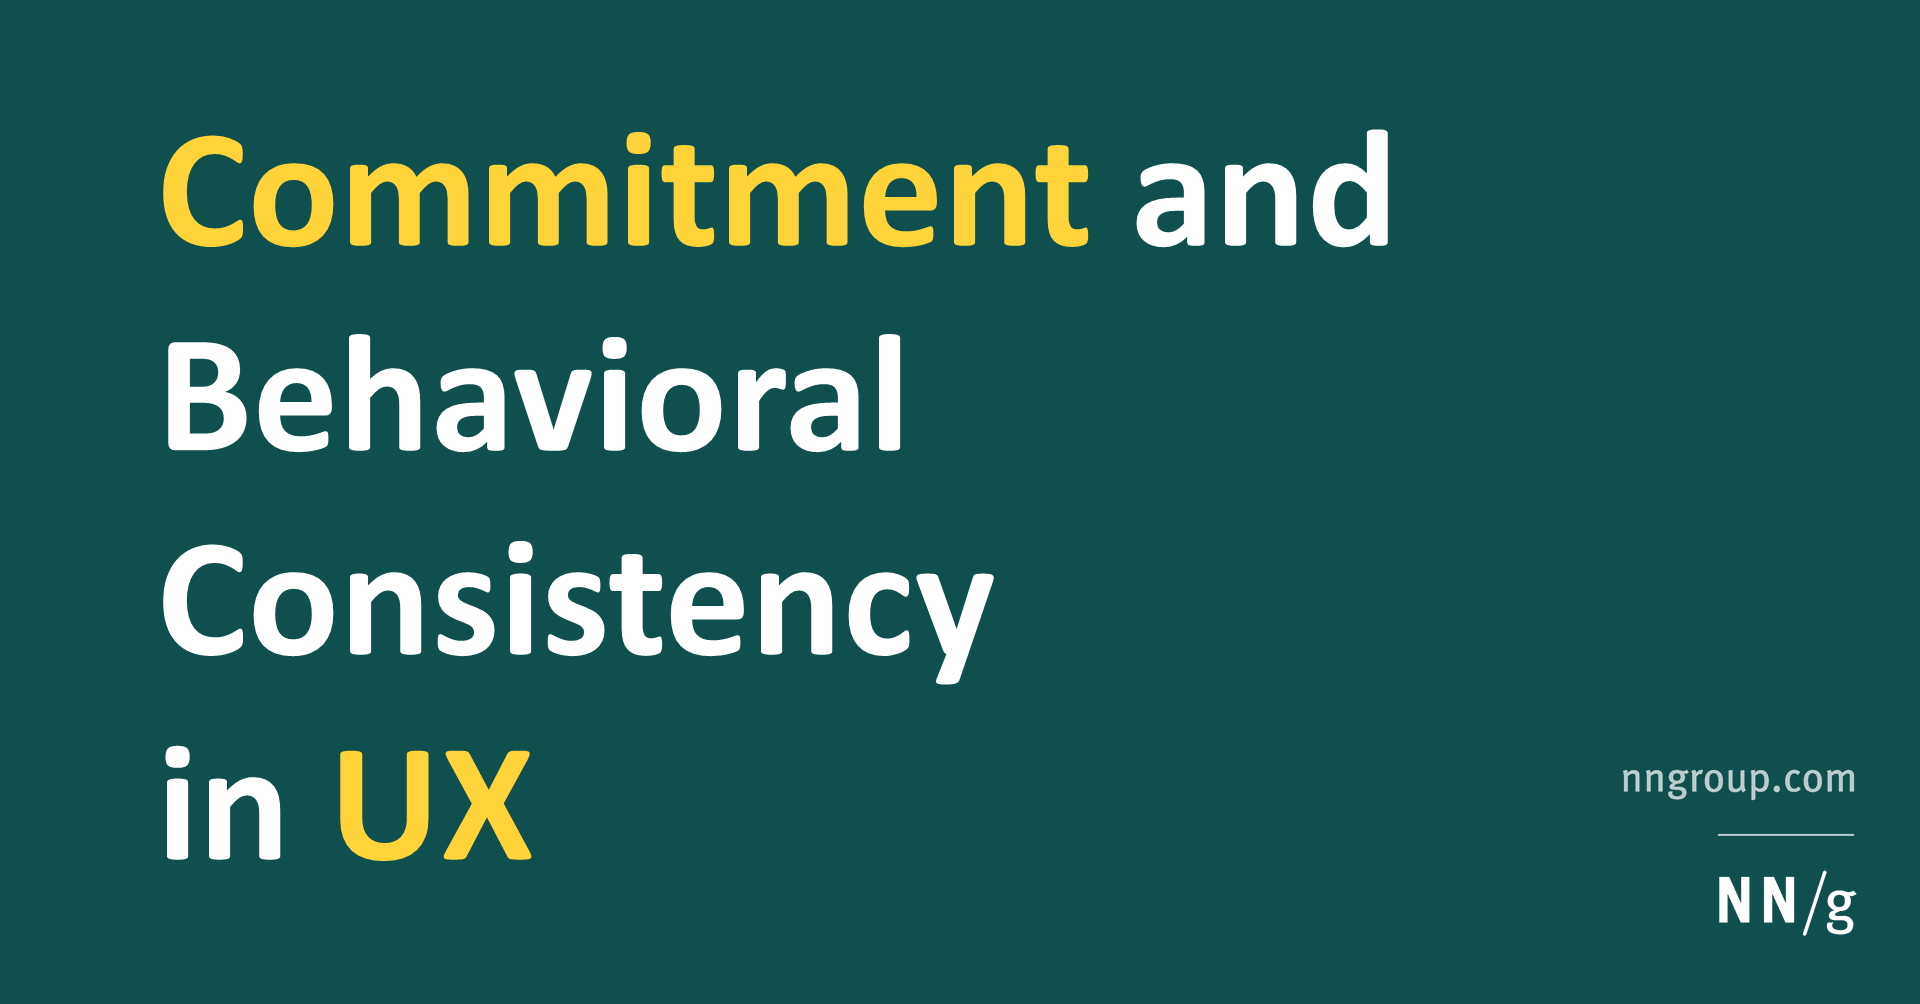 The Principle of Commitment and Behavioral Consistency